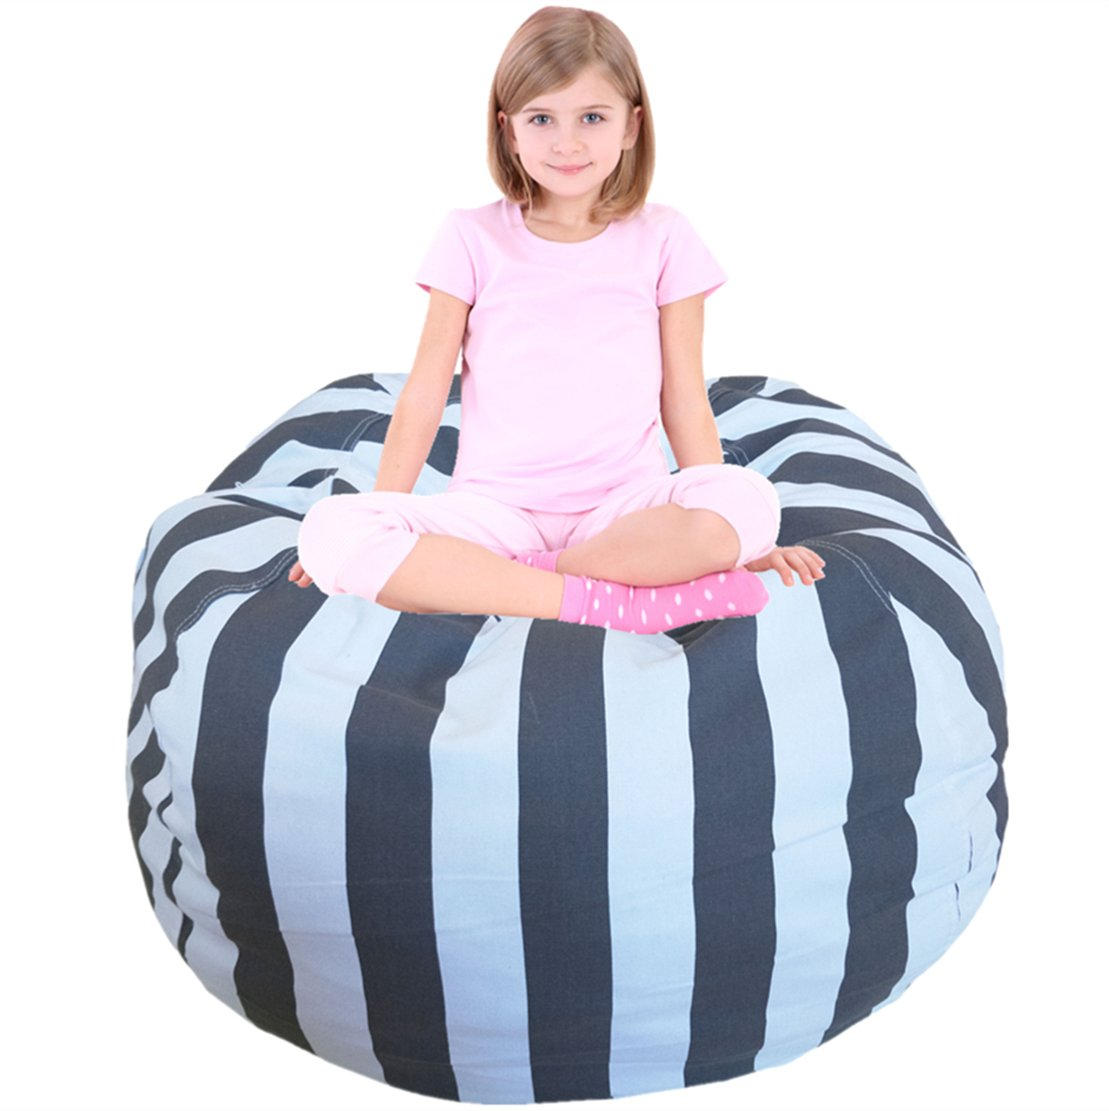 Cheap Bean Bag For Kids Find Bean Bag For Kids Deals On Line At